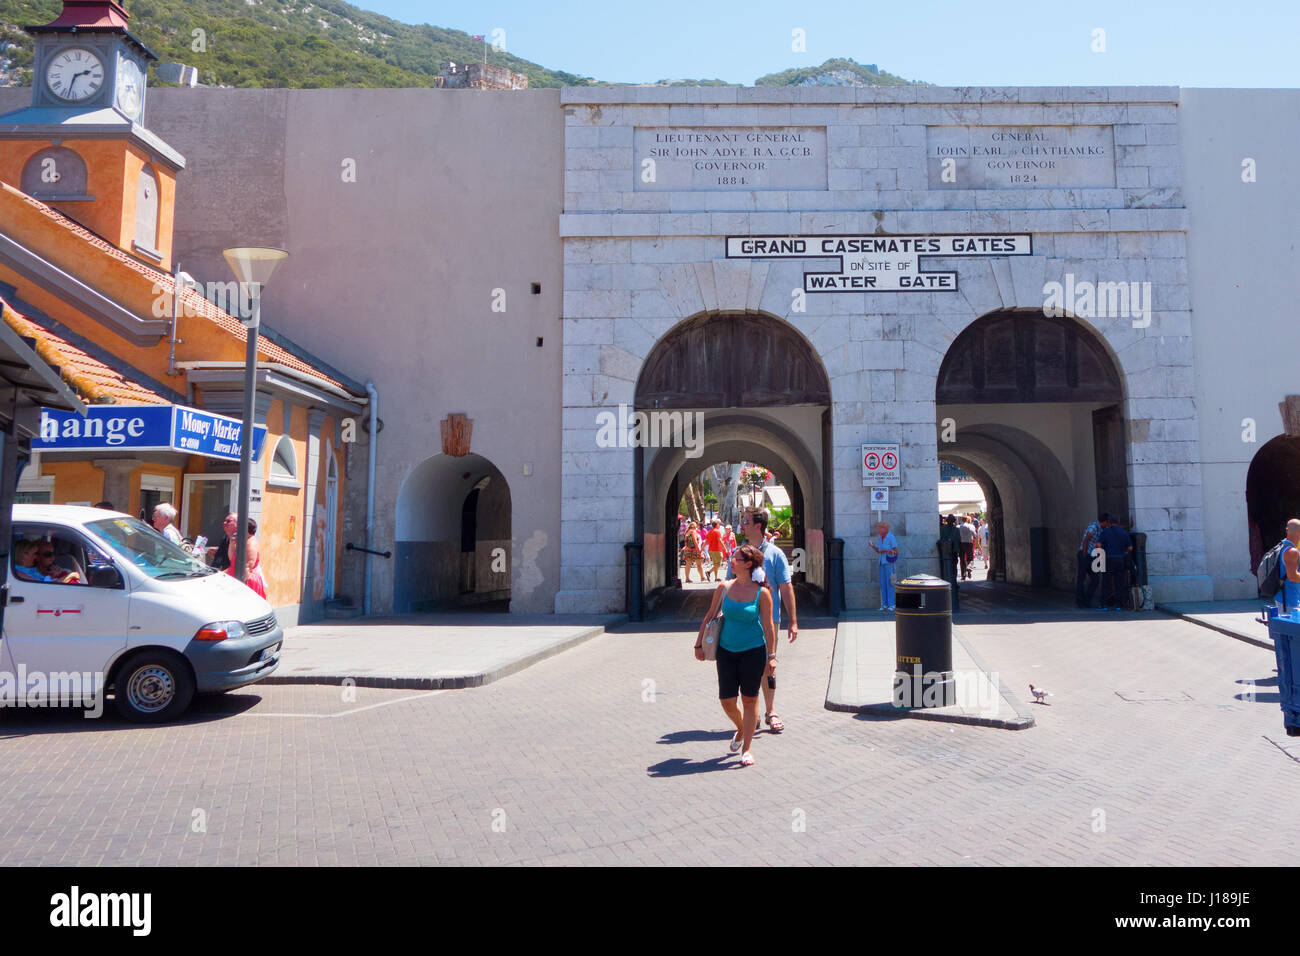 On the Island of Gibraltar. Grand Casemates Gates on site of Water Gate - Stock Image